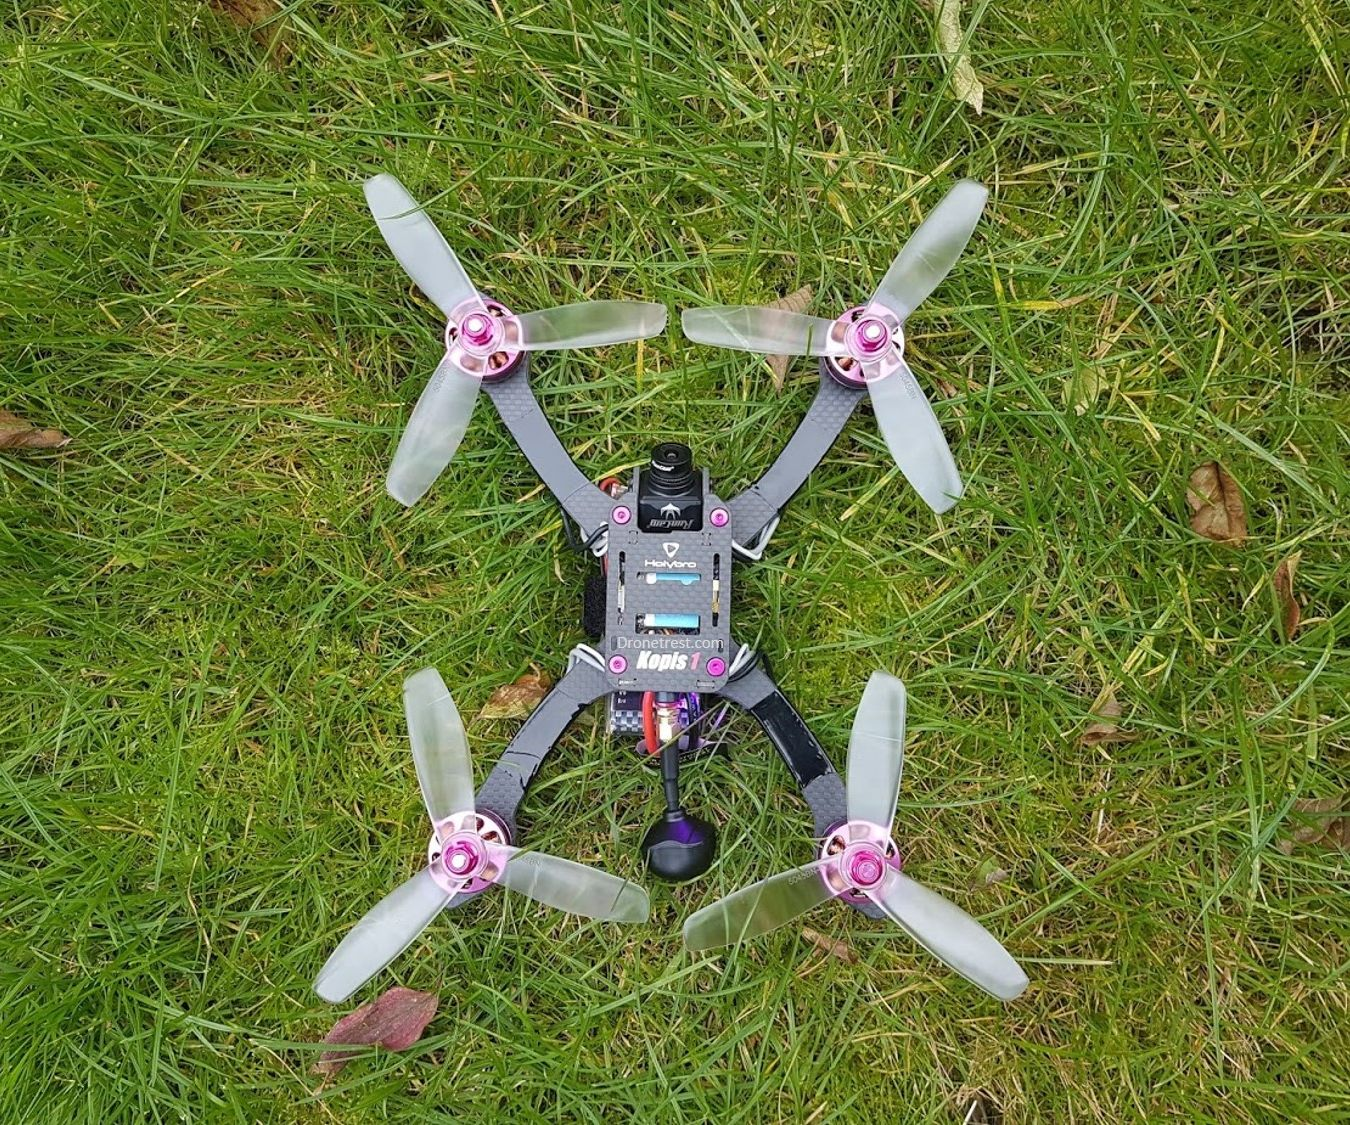 Beginners Guide to FPV Drone Racing